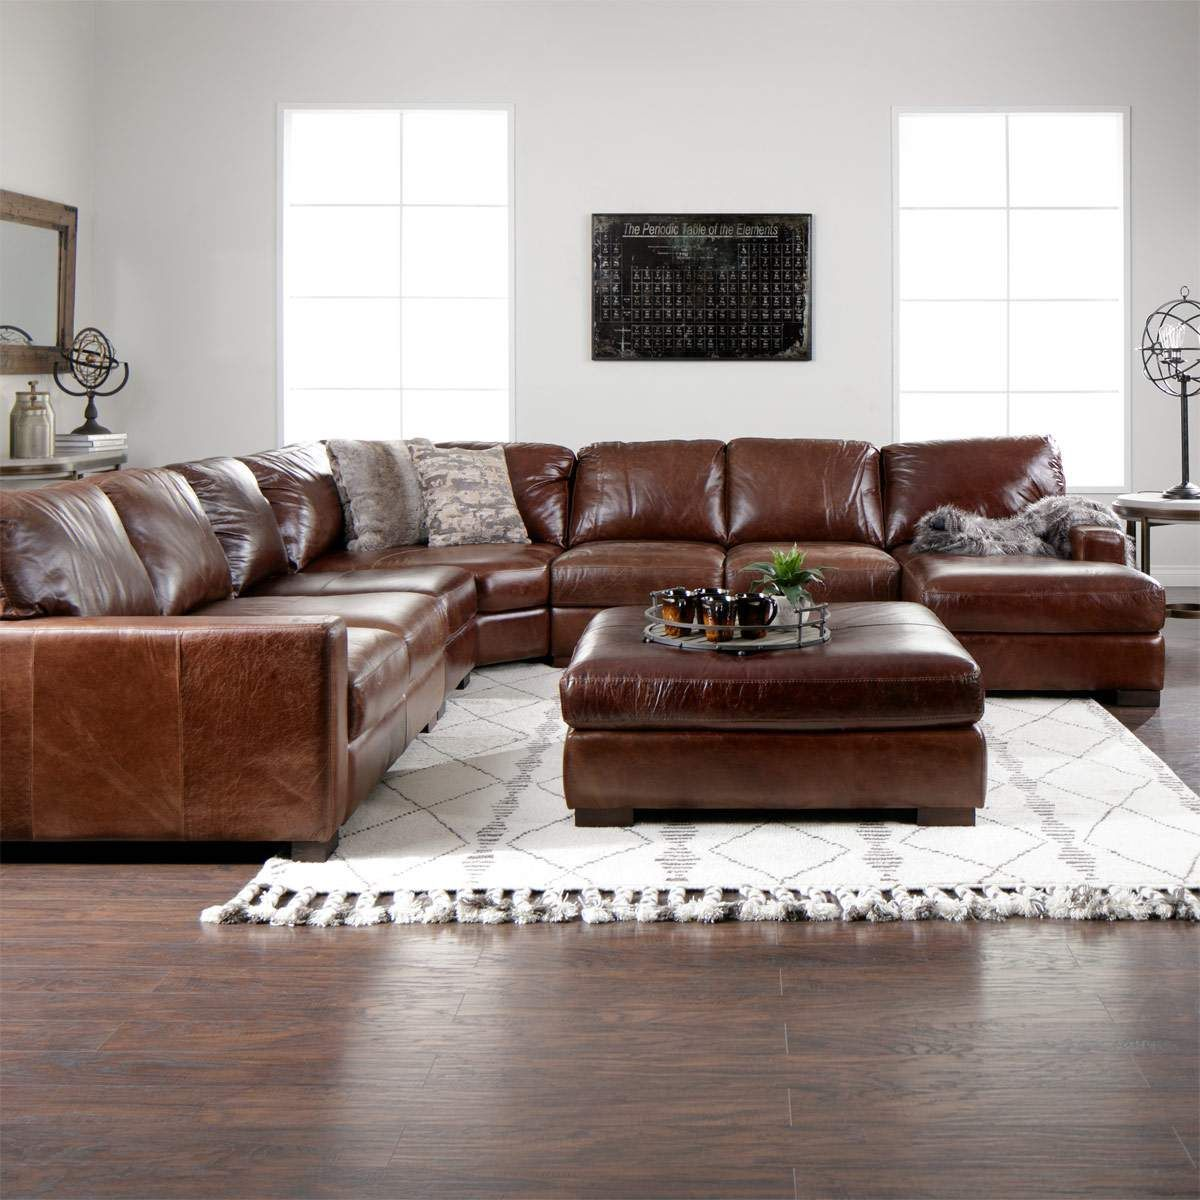 The Handsome Landmark Brown Leather Living Room Sectional Is